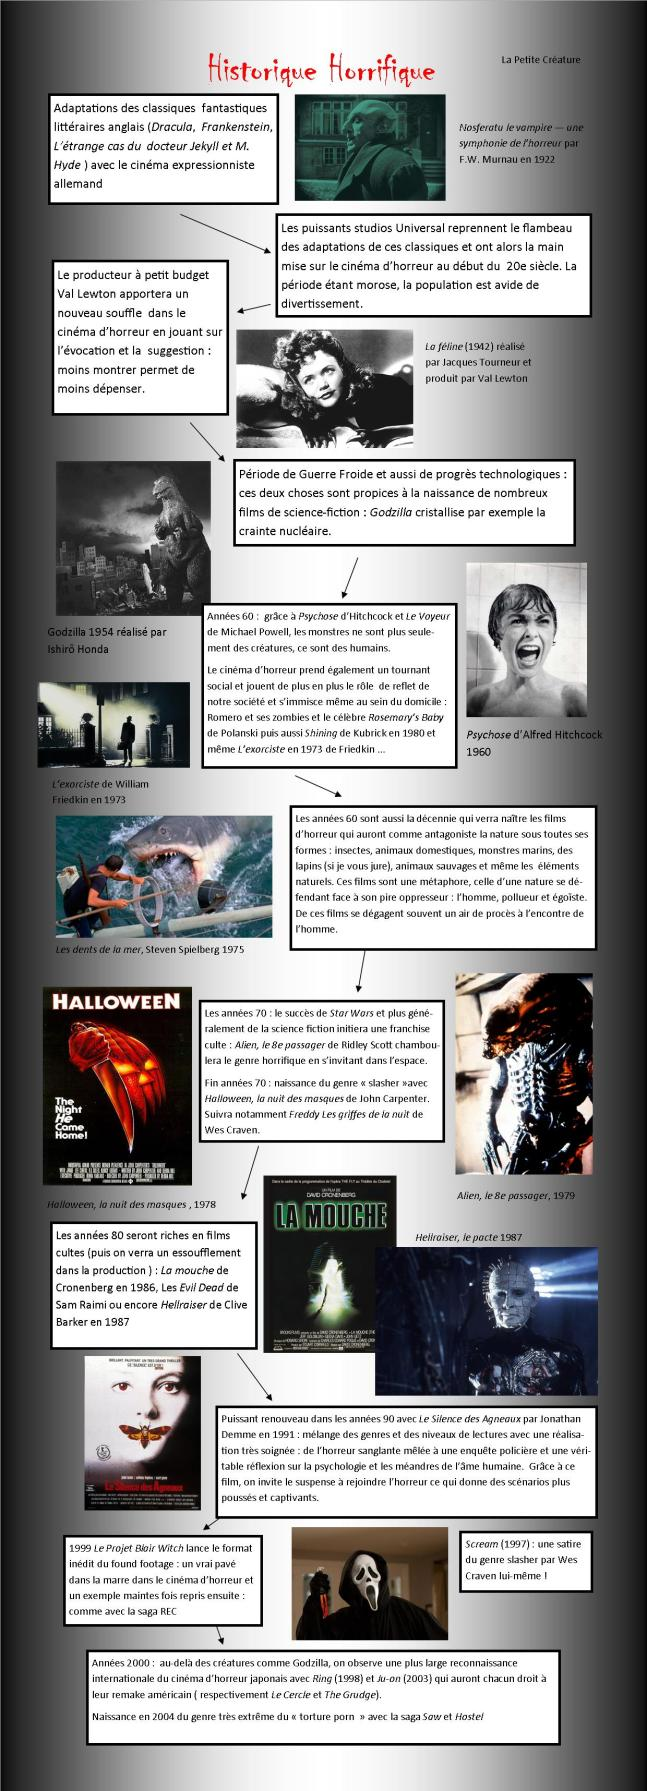 Histoire cinéma d'horreur Chronologie film d'horreur Nosferatu Godzilla Psychose Les dents de la mer Alien Halloween La Mouche Hellraiser Le Silence des Agneaux Scary Movie Slasher